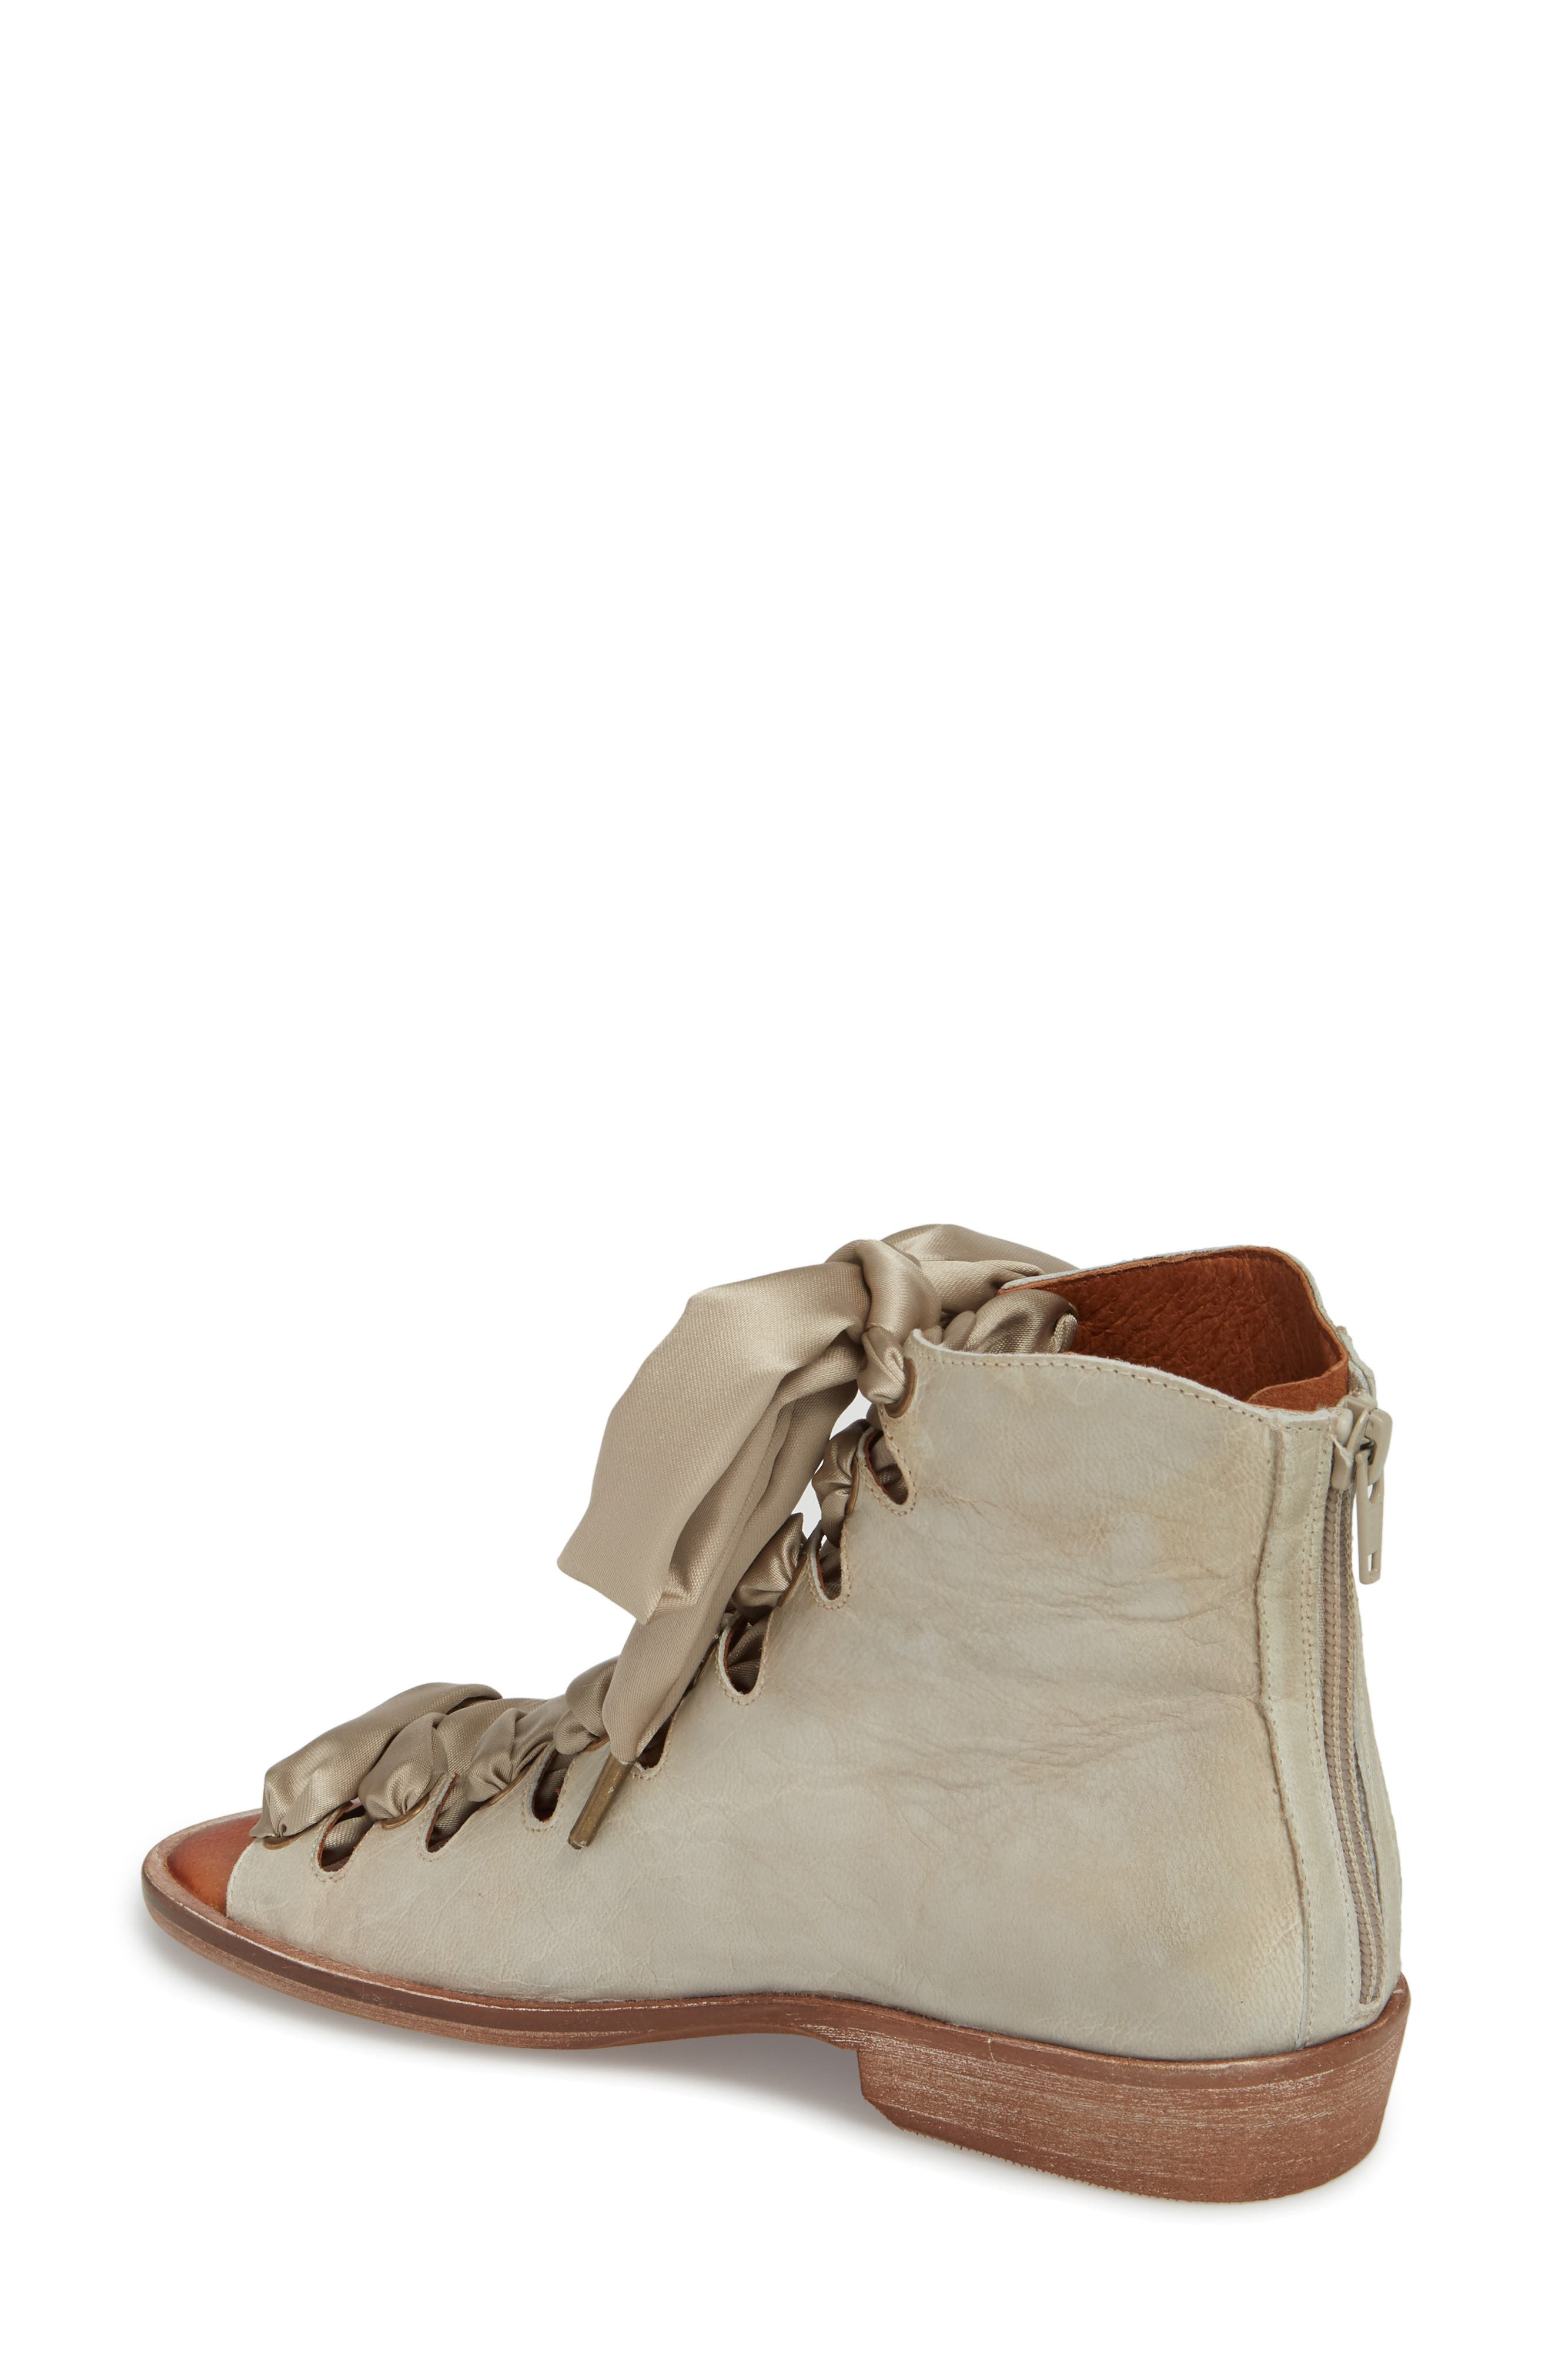 Alternate Image 2  - Free People Palms Lace-Up Bootie Sandal (Women)